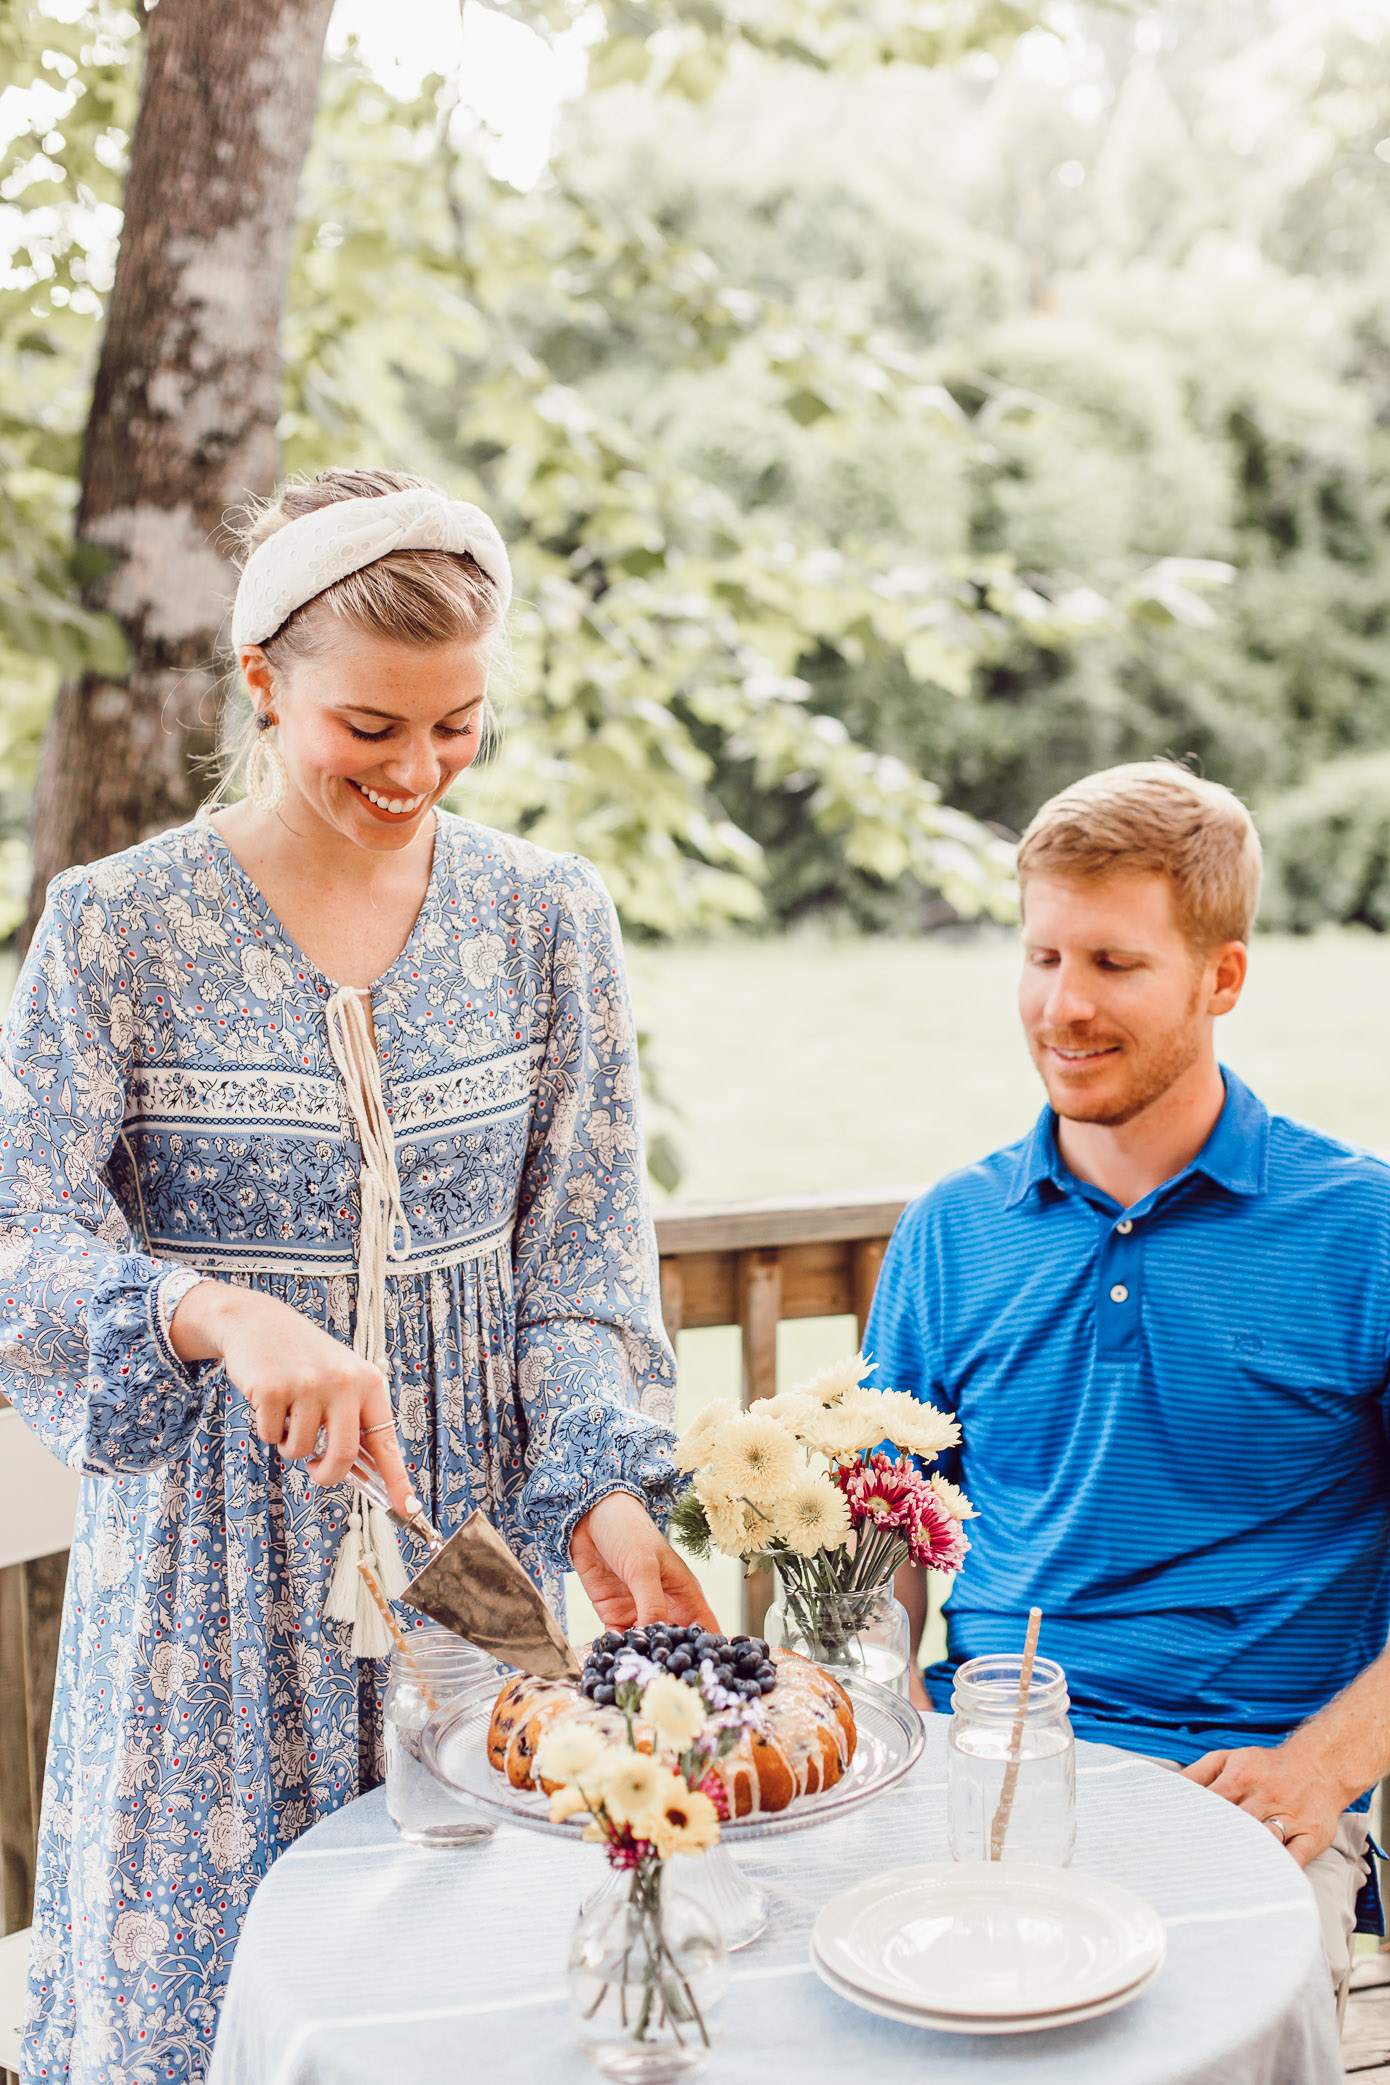 What to Bring to a Fourth of July Cookout, What to Bring to a 4th of July Party   Louella Reese